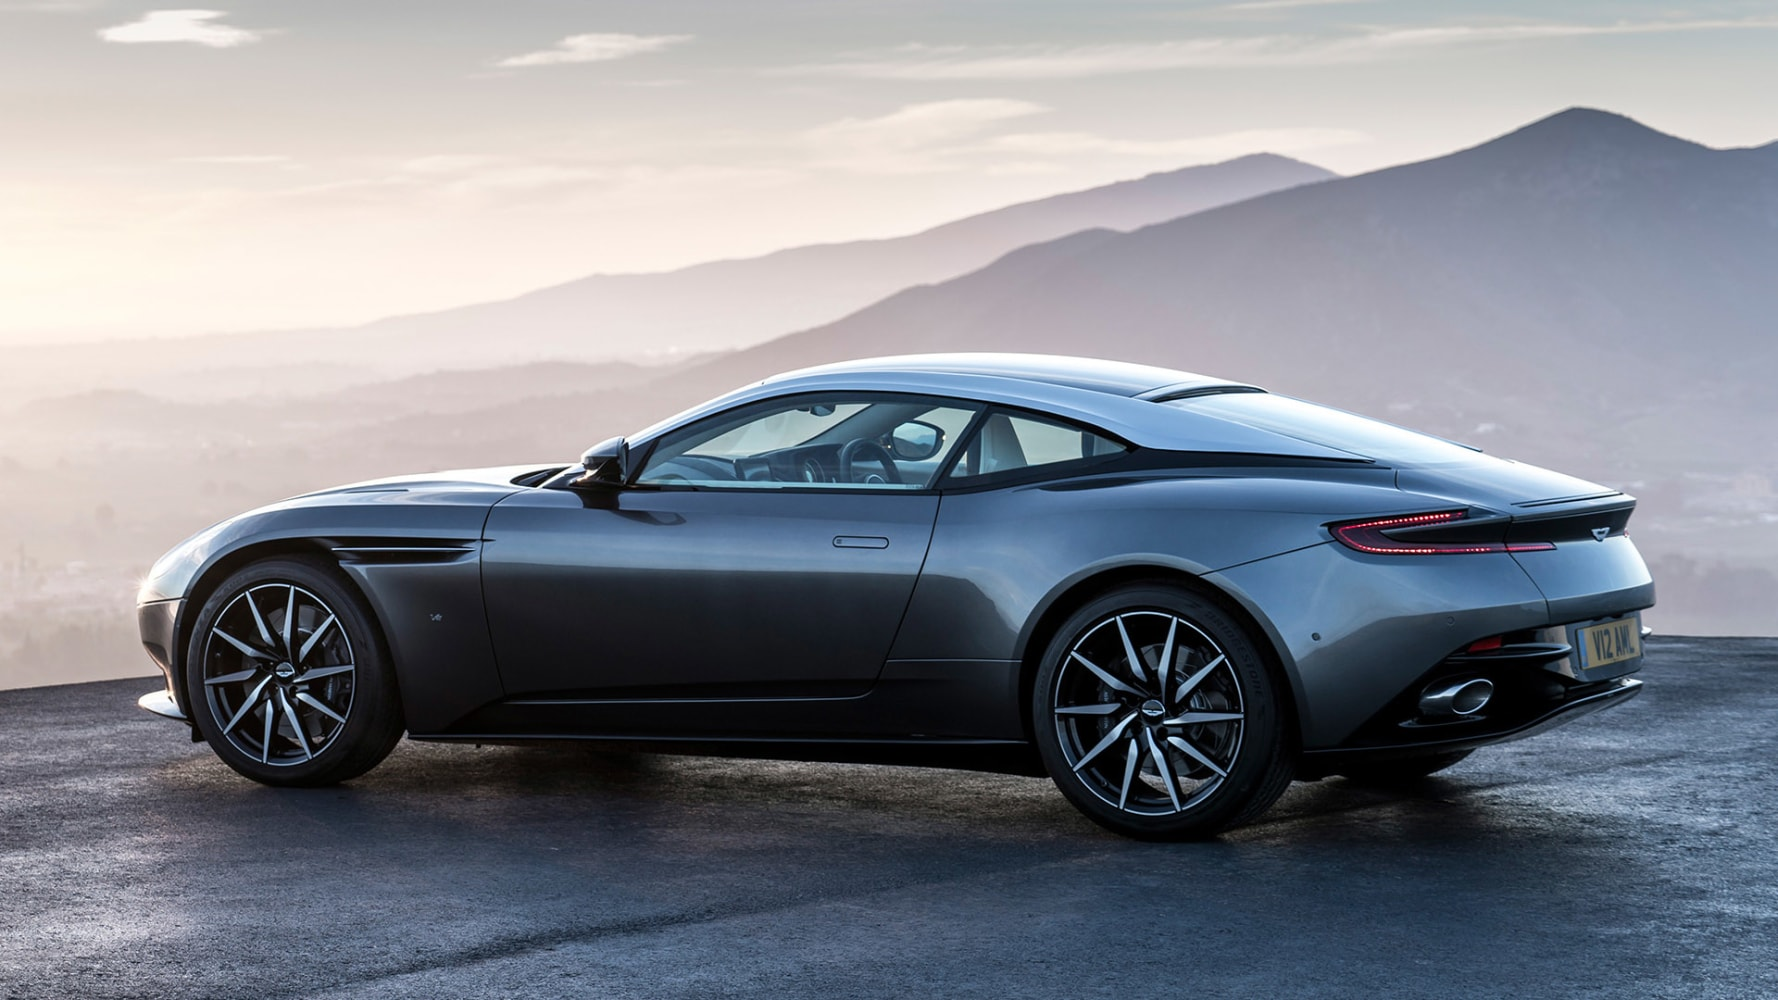 aston martin 39 s quantum leap why 007 might not recognize his next ride nbc news. Black Bedroom Furniture Sets. Home Design Ideas